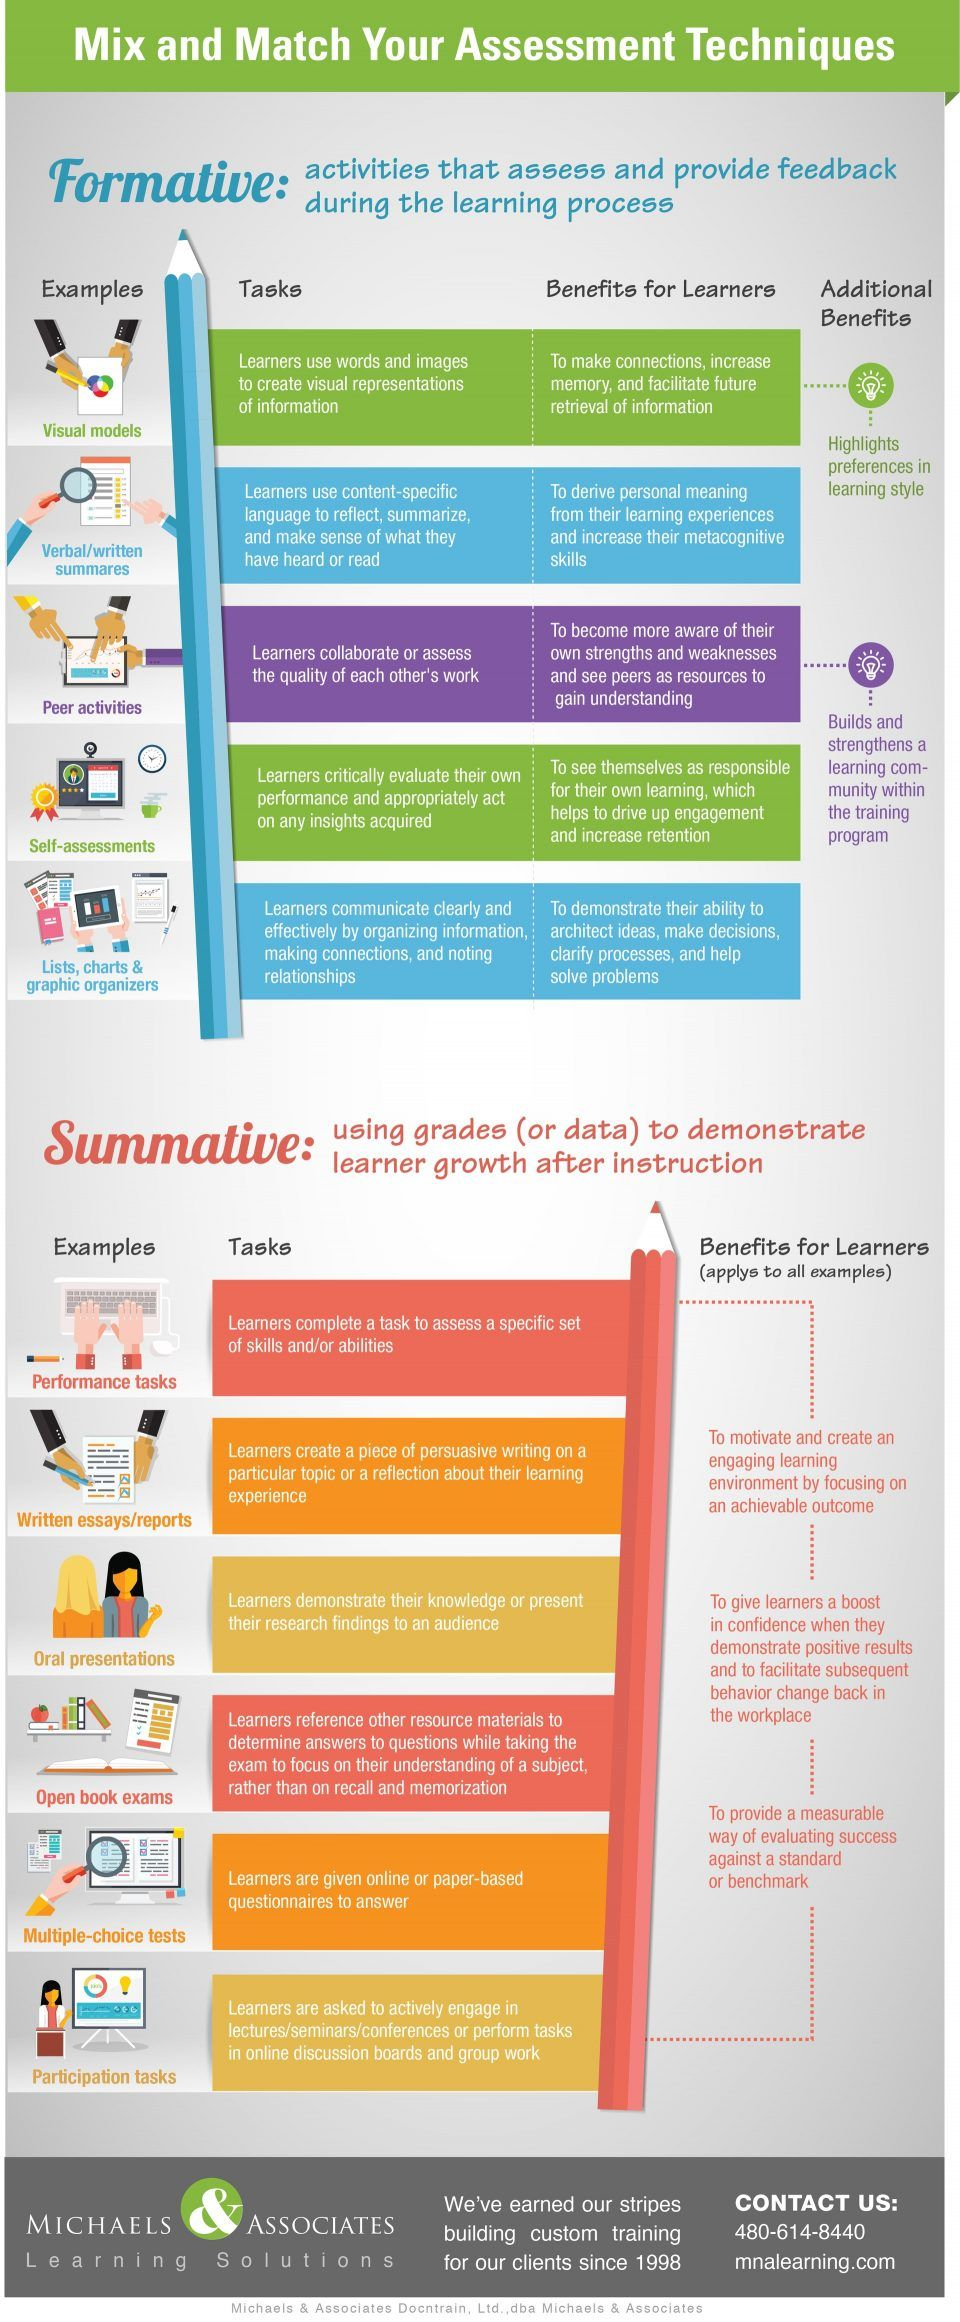 Mix & Match Your Assessment Techniques to Boost Performance Infographic